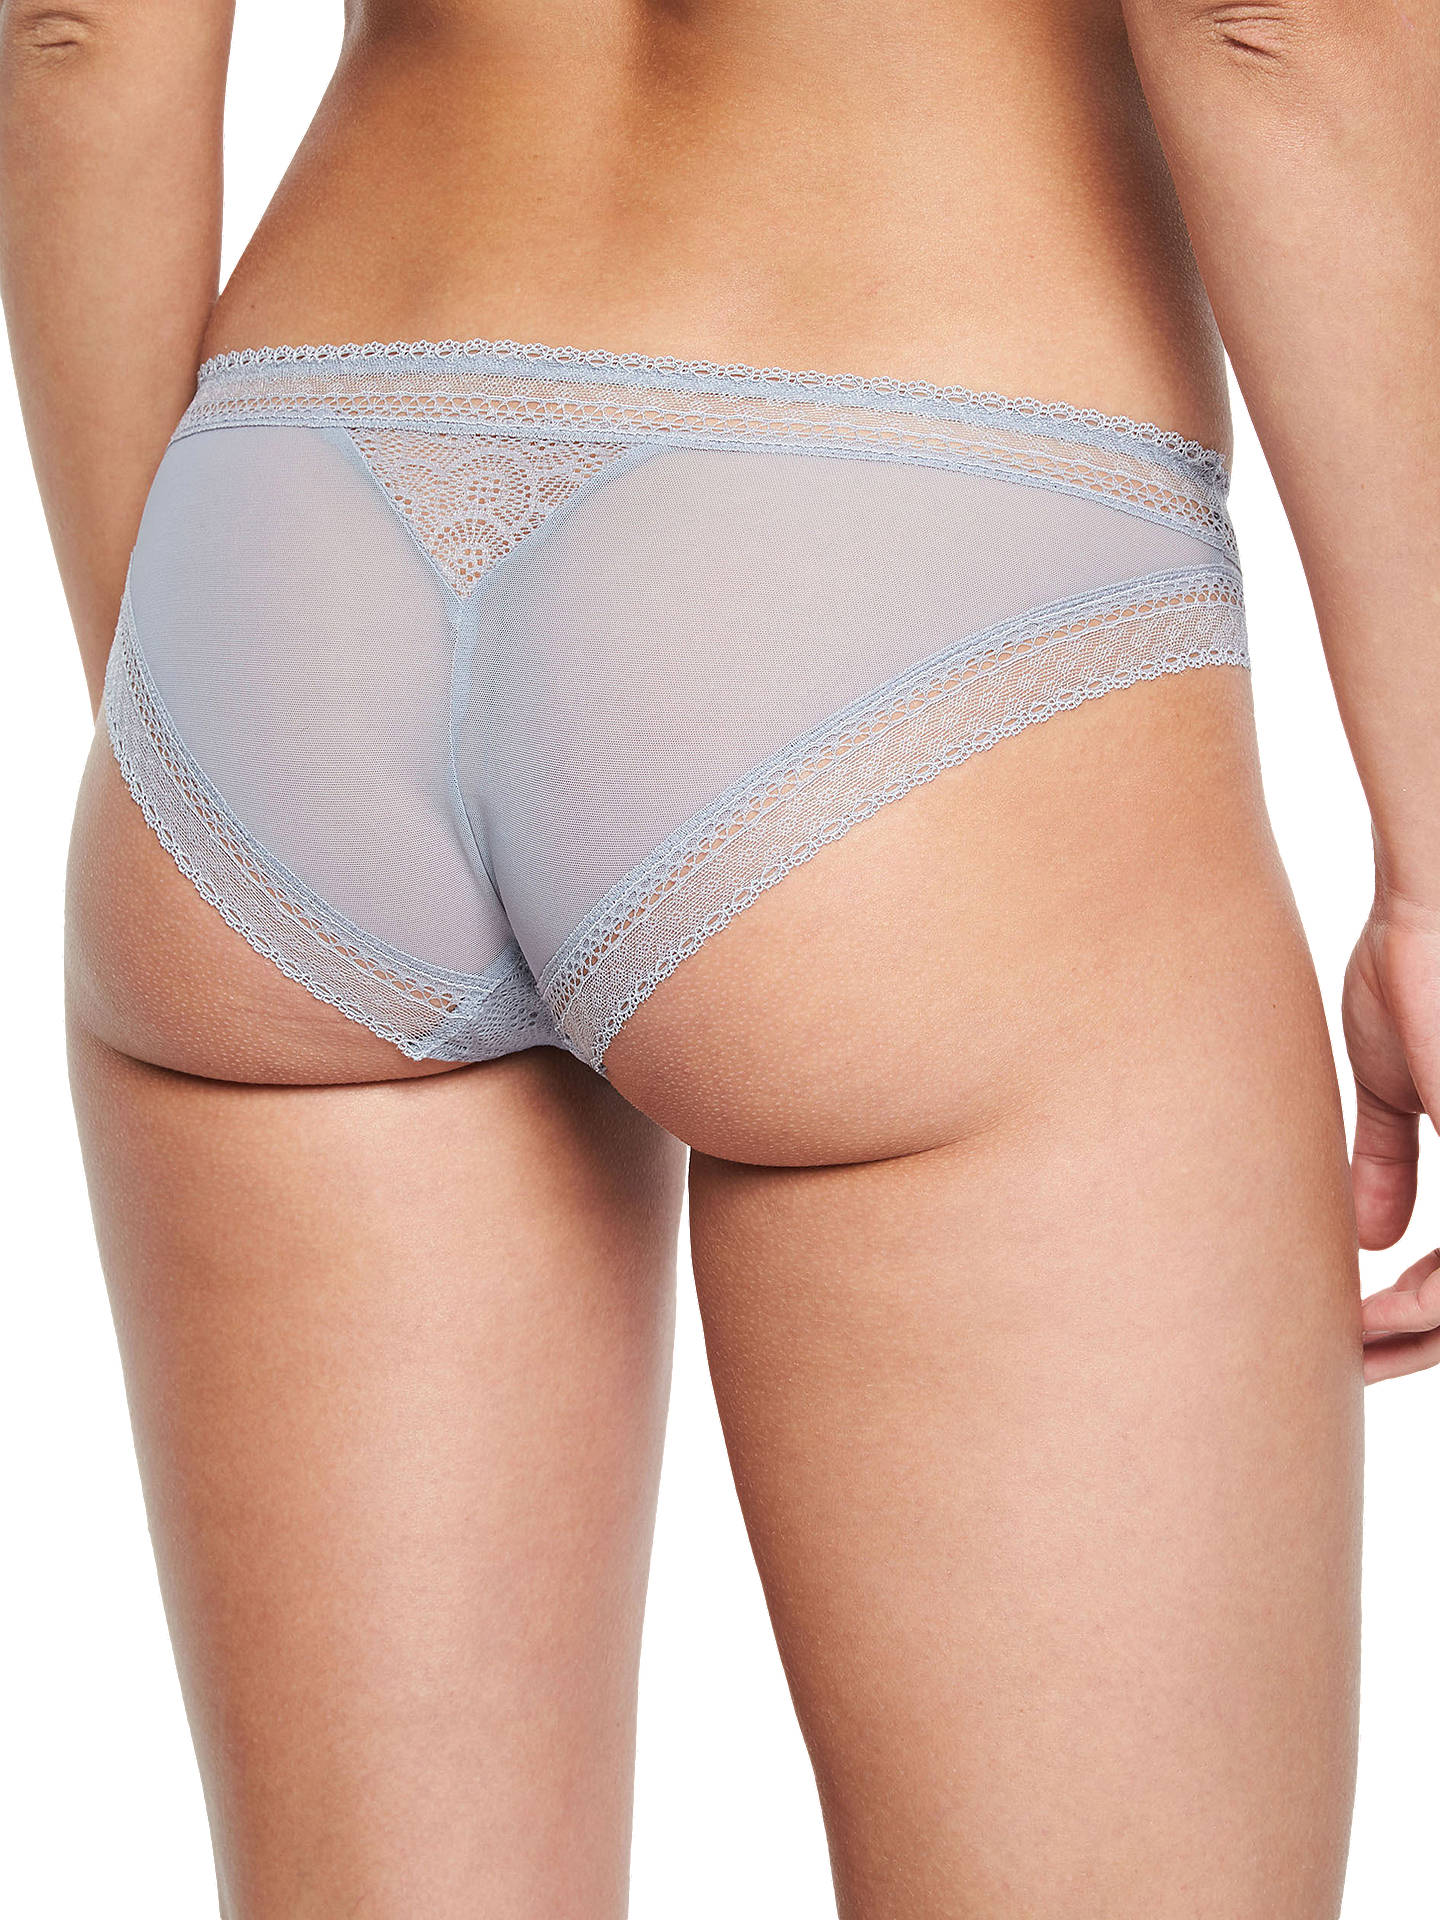 BuyChantelle Festivite Tanga Briefs, Grey, S Online at johnlewis.com